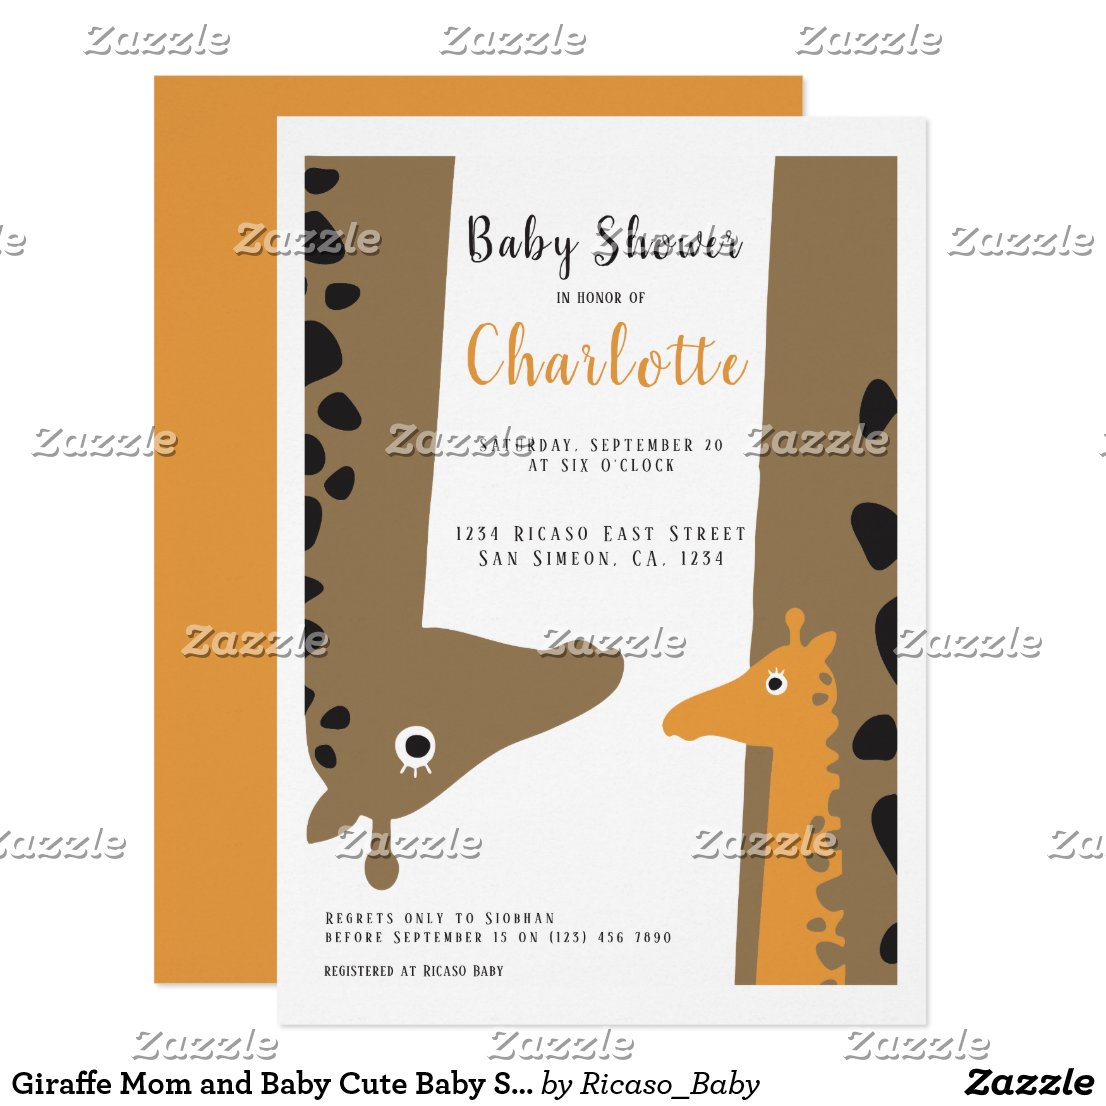 Giraffe Mom and Baby Cute Baby Shower Invitation